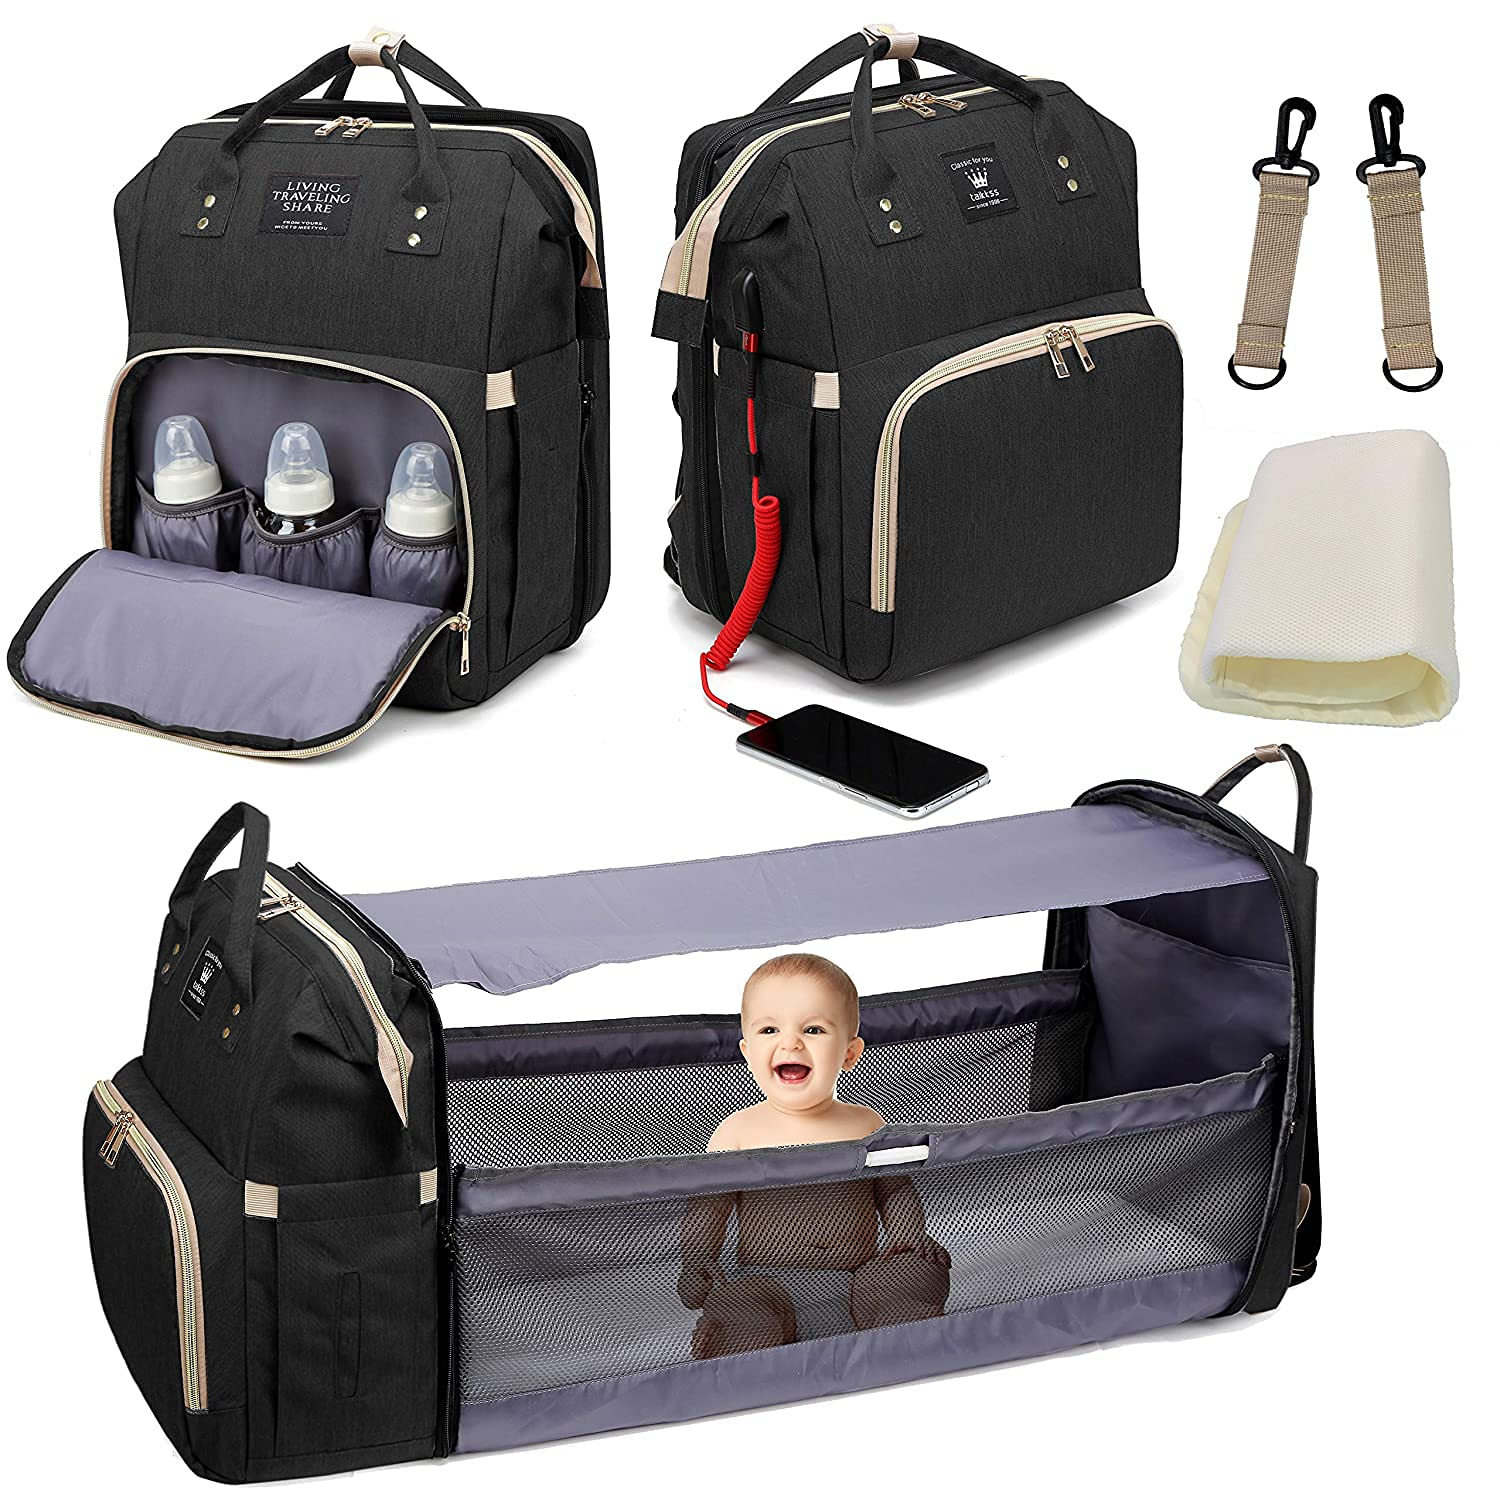 Diaper Bag Backpack, 3 in 1 Mommy Bag with Changing Station, Travel Bassinet Foldable Baby Bed, Baby Bag Portable Crib with Bed and Diaper Bag (Black)